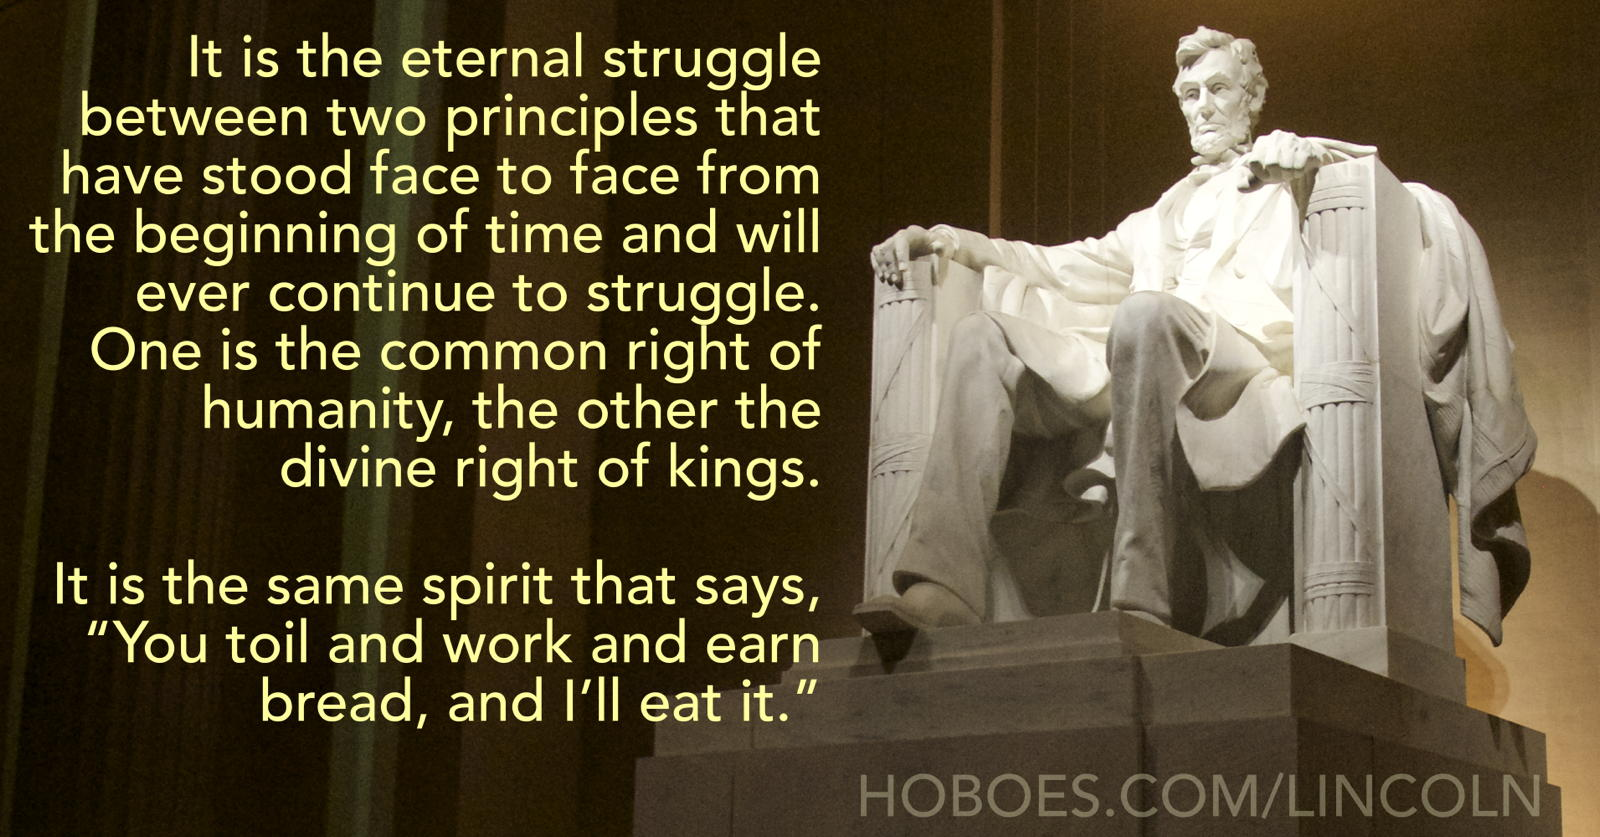 Abraham Lincoln: The Eternal Struggle